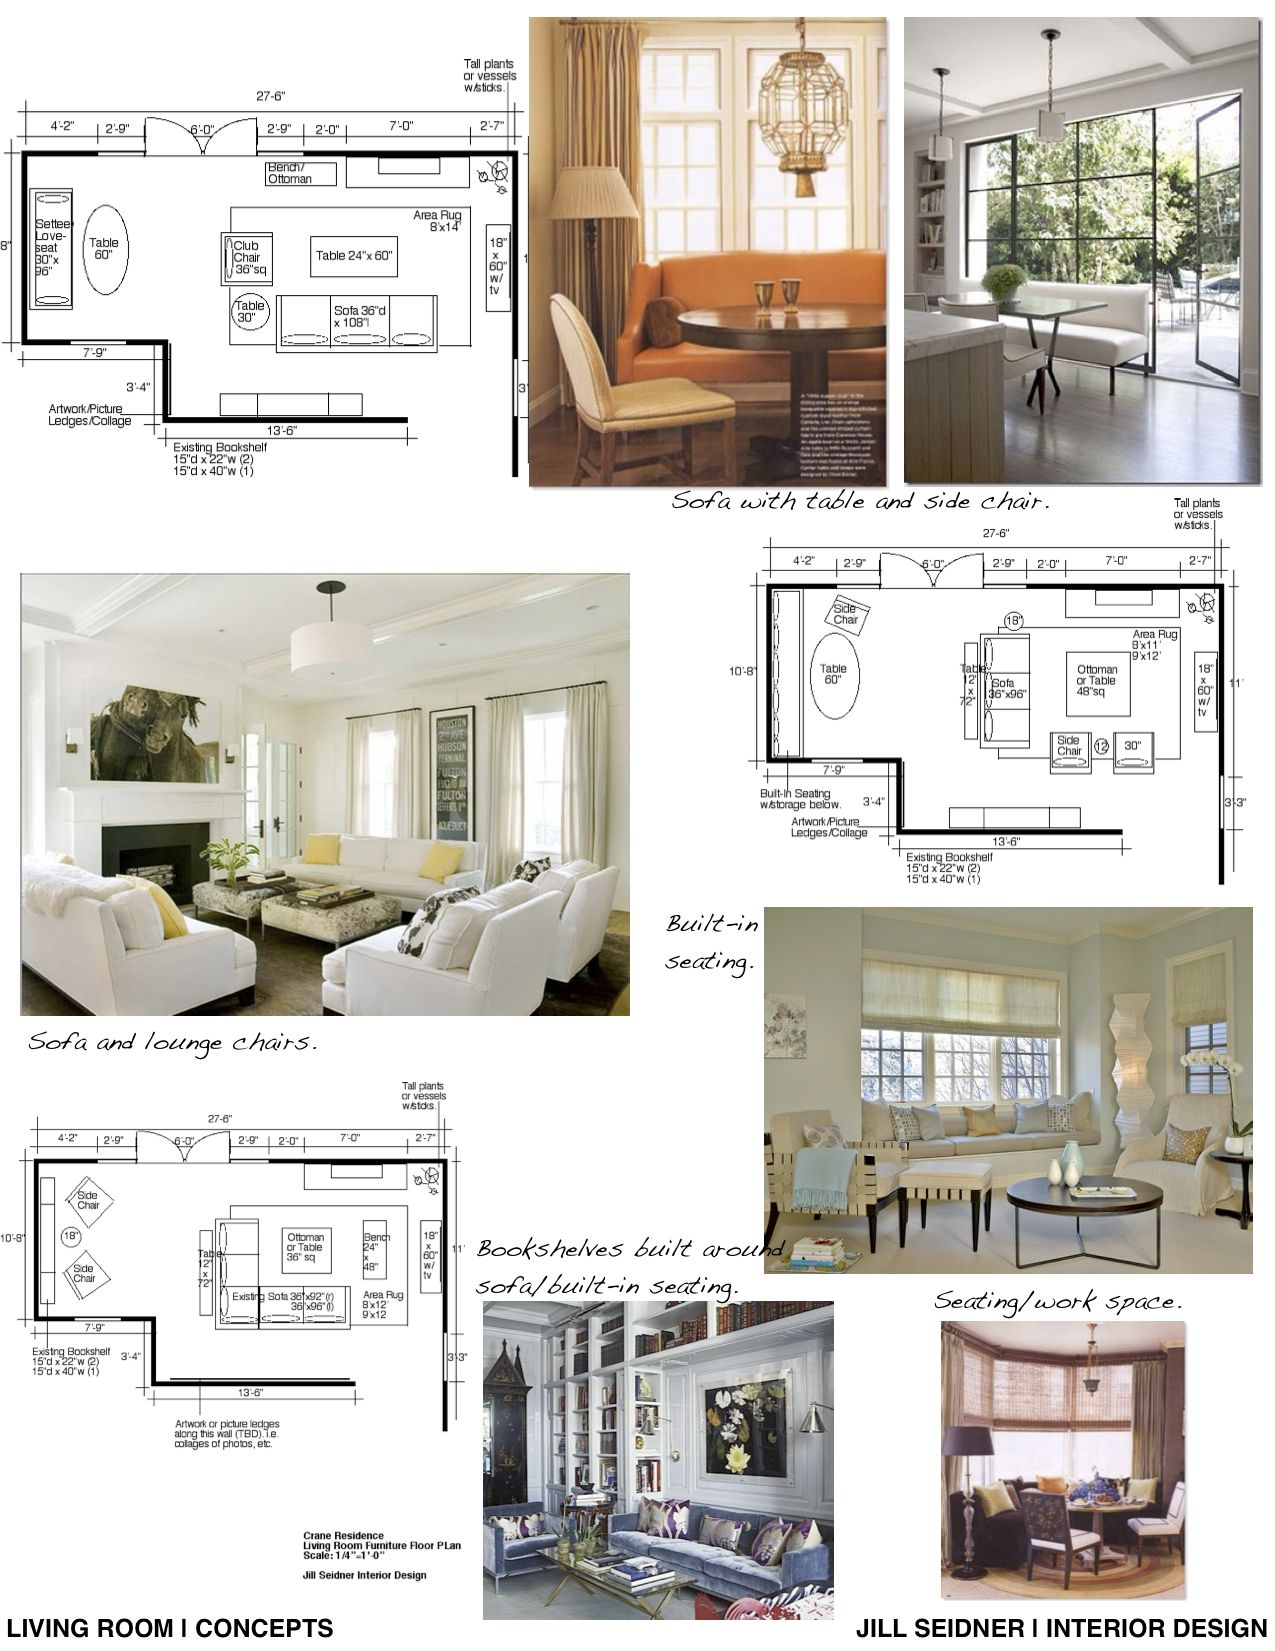 Concept board and furniture layout for a living room.